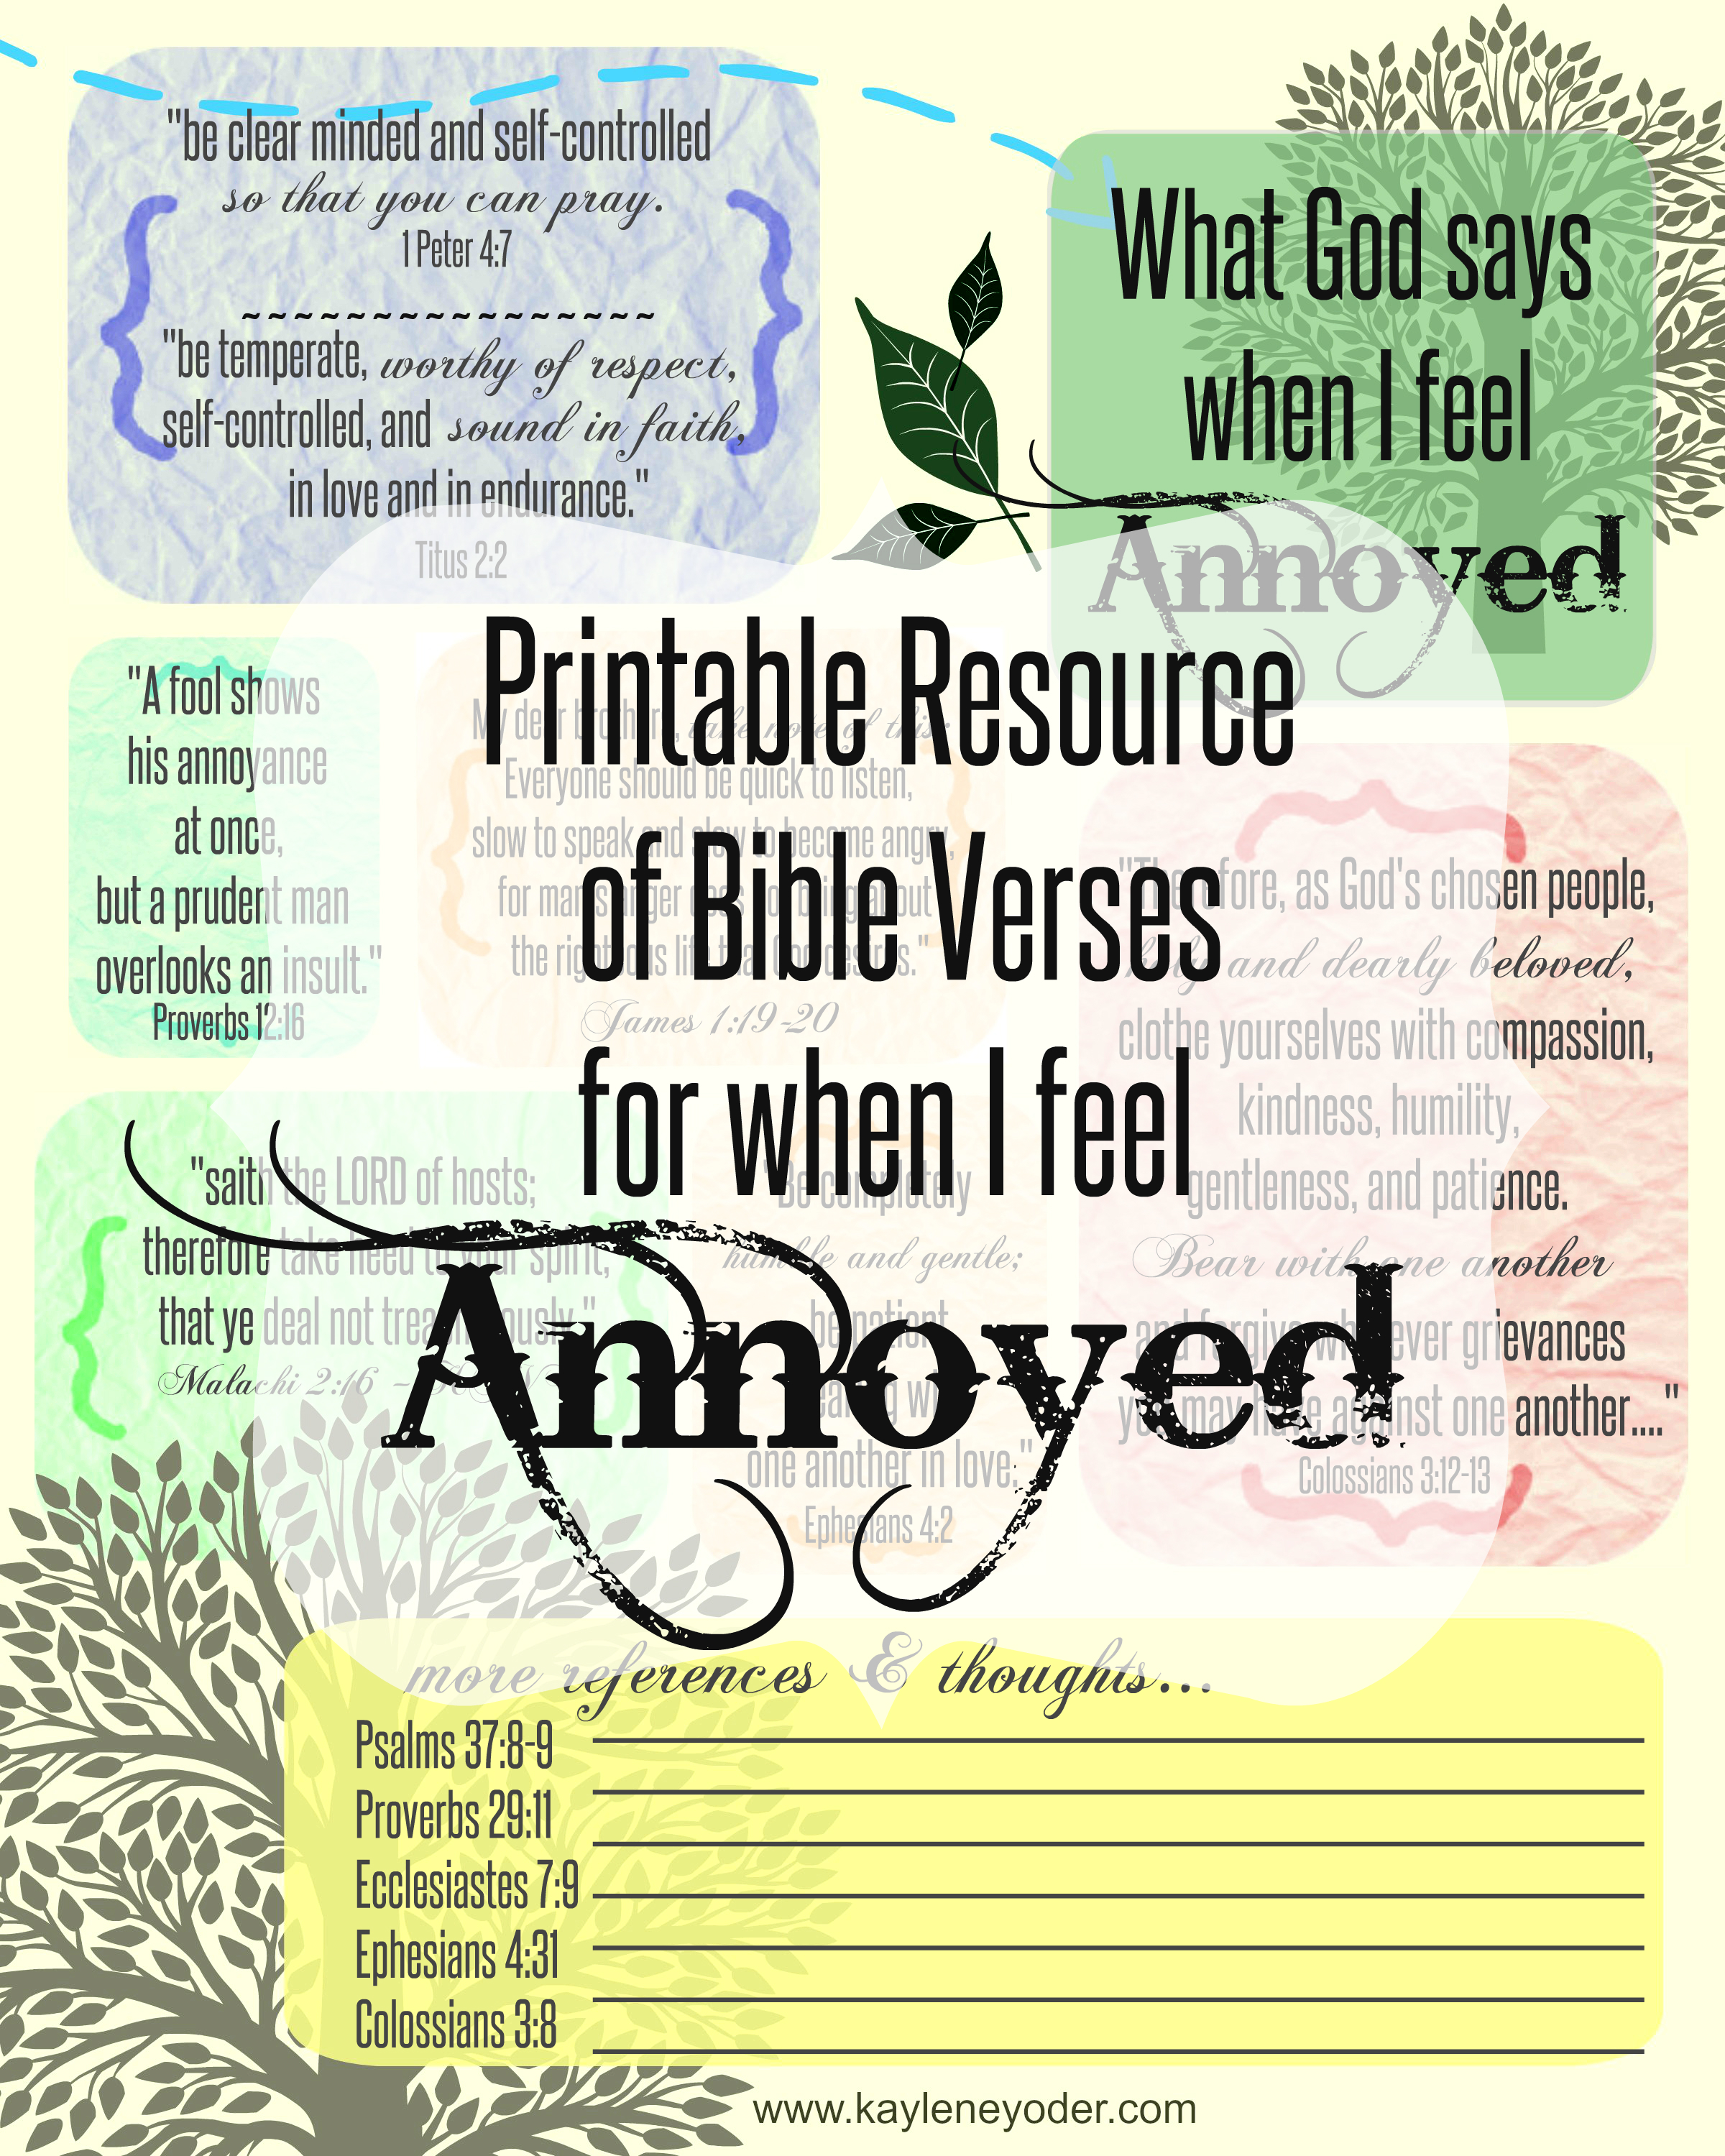 Awesome Pride Bible Verses About Humility Niv Free Printable Resource When I Feel Annoyed What God Says When We Feel Annoyed Kaylene Yoder Bible Verses About Humility Instead Bible Verses inspiration Bible Verses About Humility